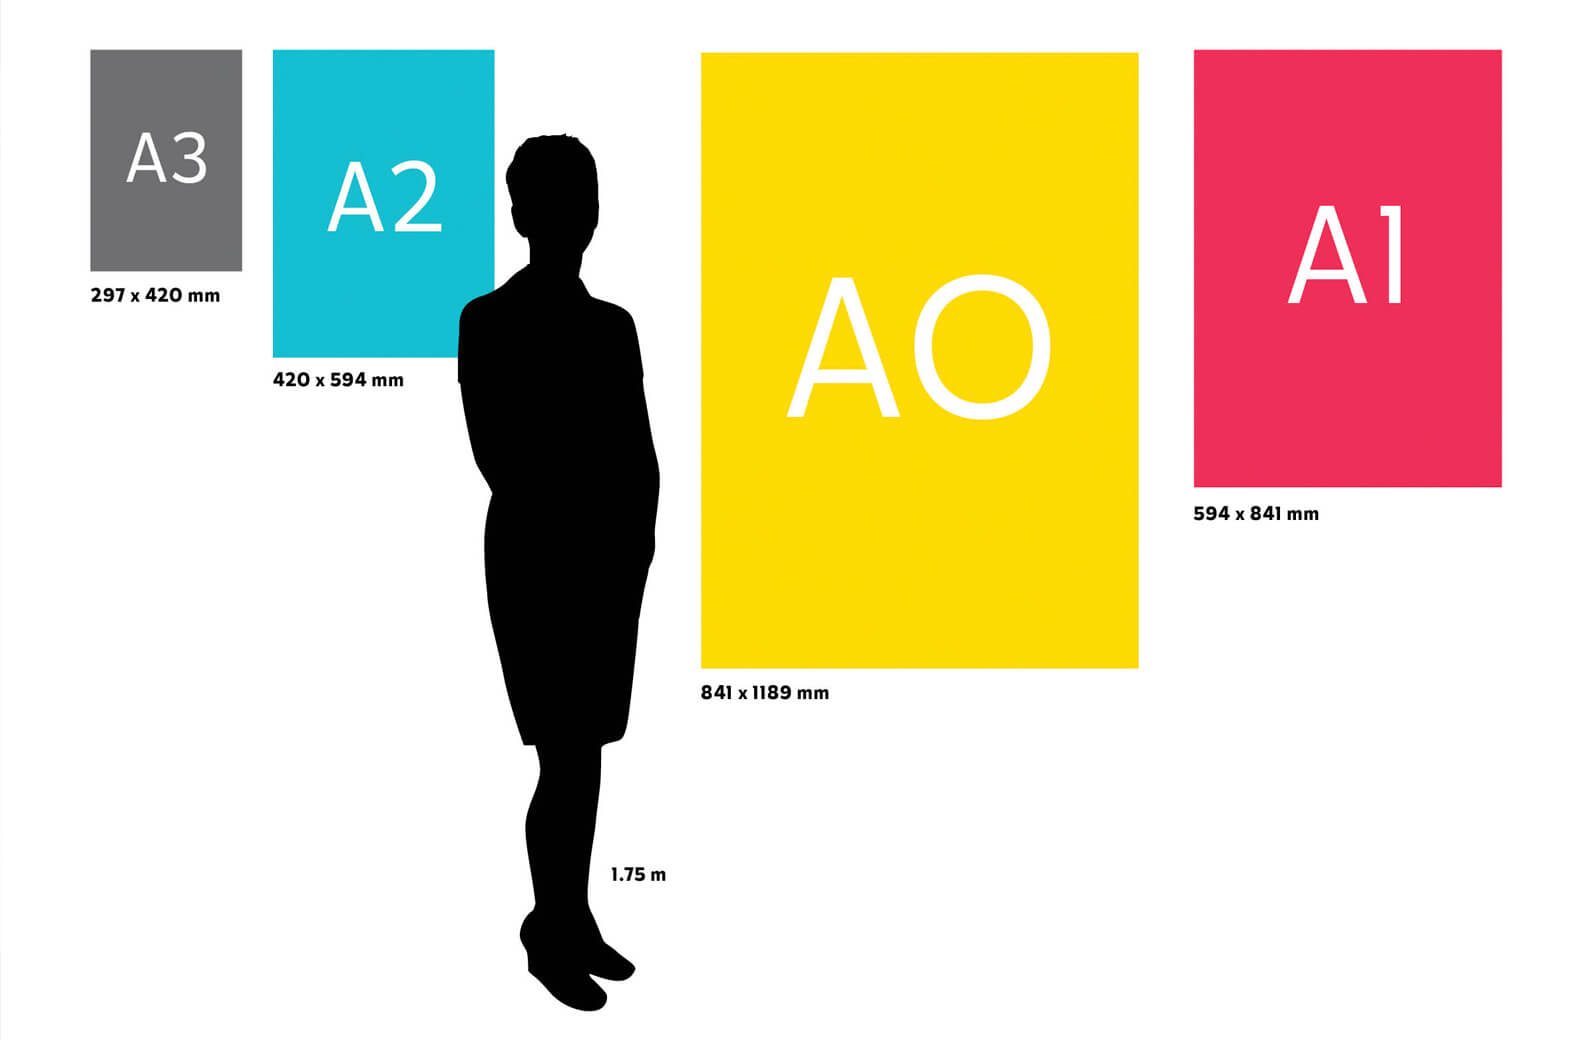 Standard poster sizes in relation to a person's silhouette